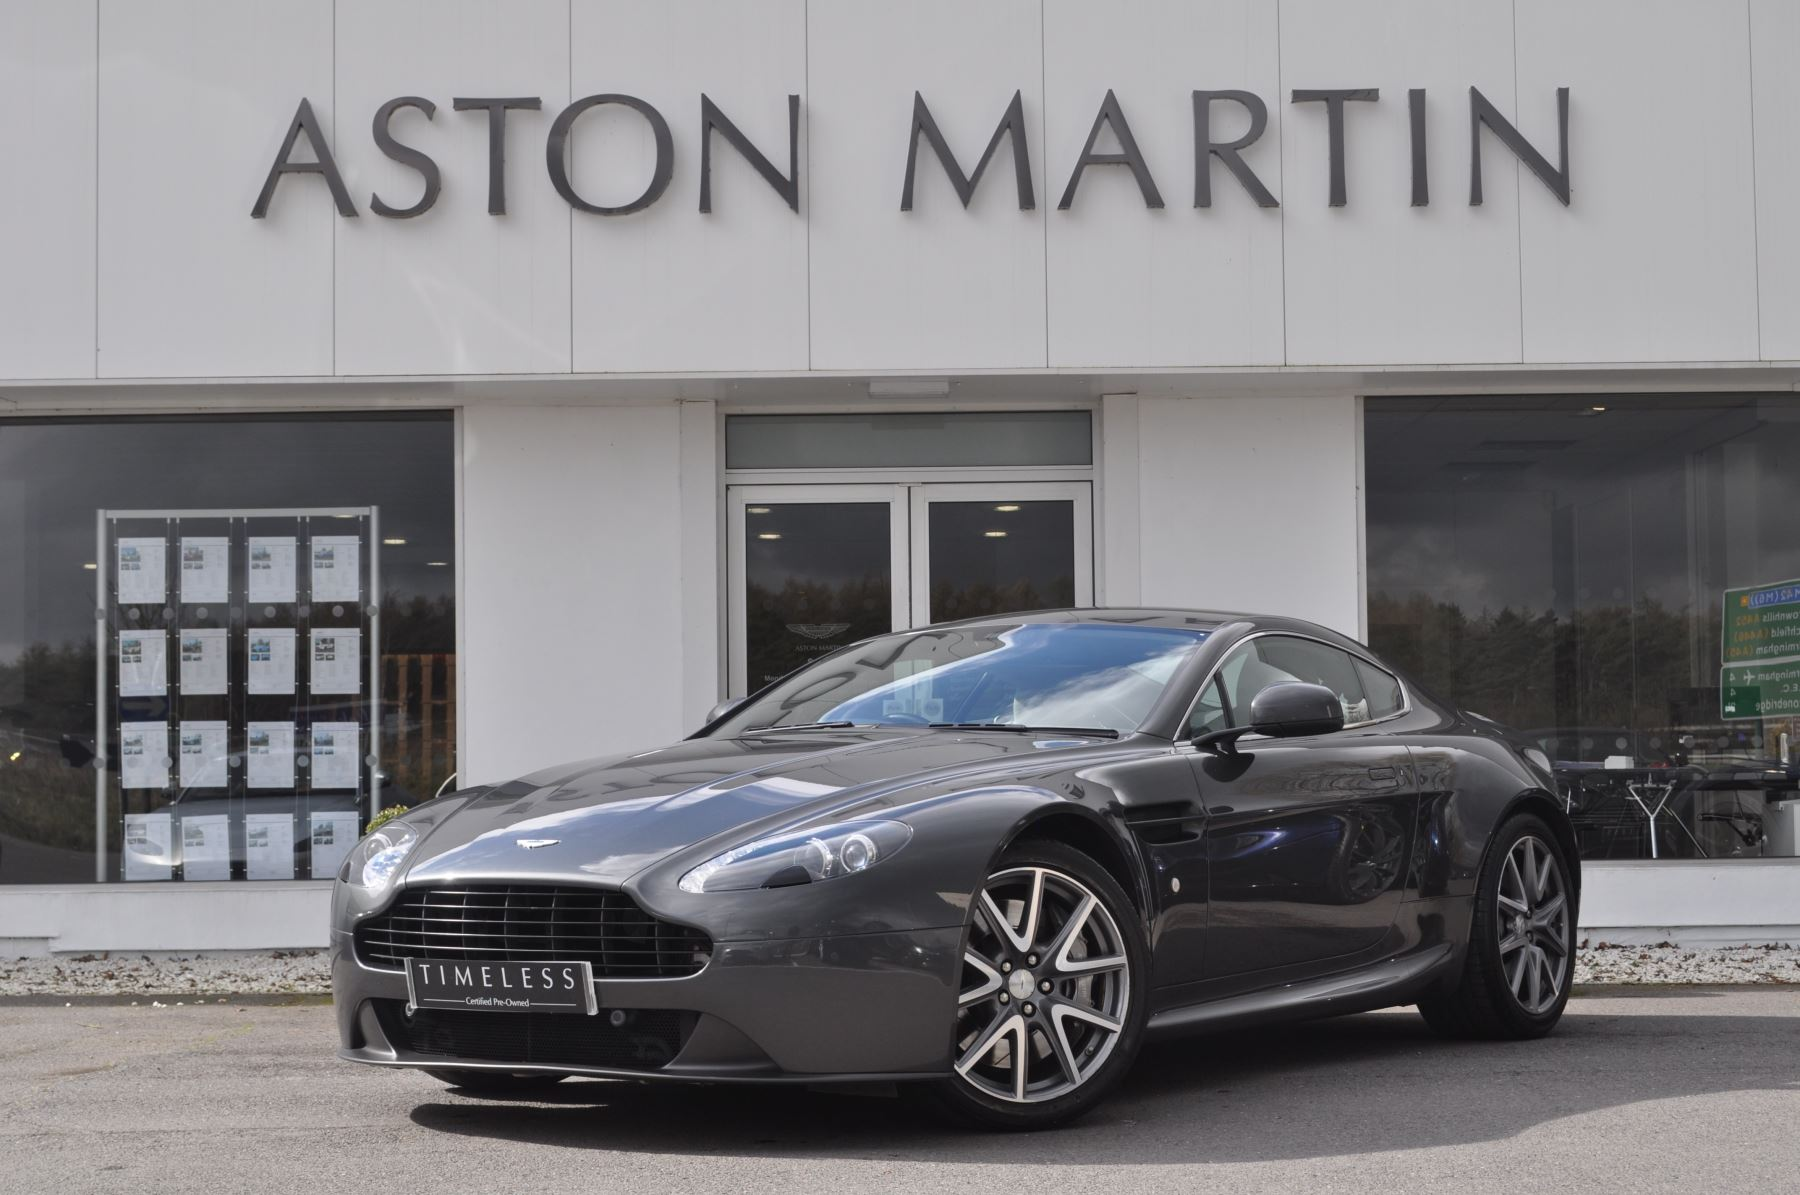 Aston Martin V8 Vantage Coupe 2dr Sportshift [420] 4.7 Automatic 3 door Coupe (2015) image